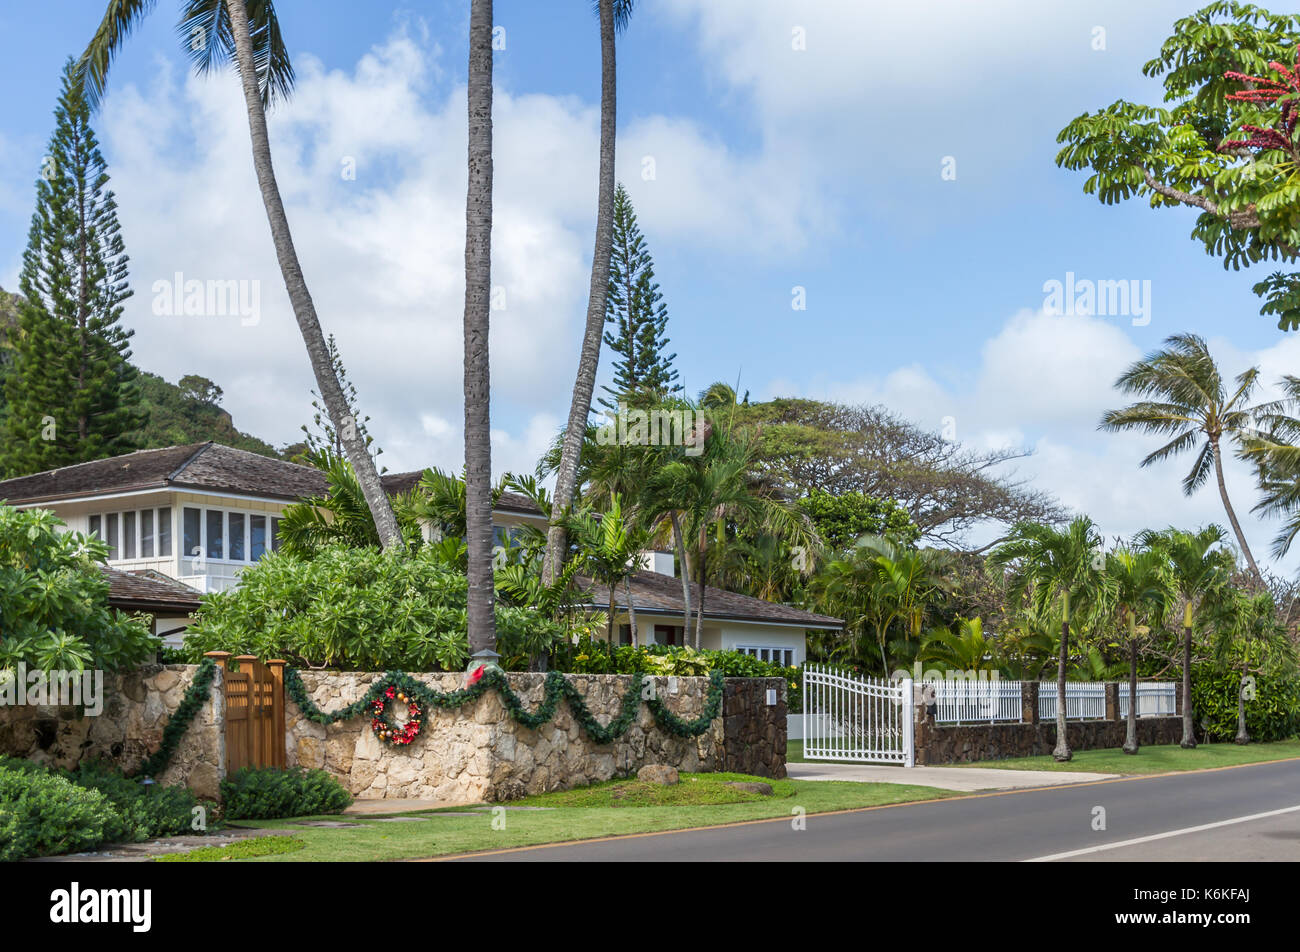 Christmas In Hawaii Decorations.Luxury Home Exterior With Christmas Decorations Oahu Hawaii